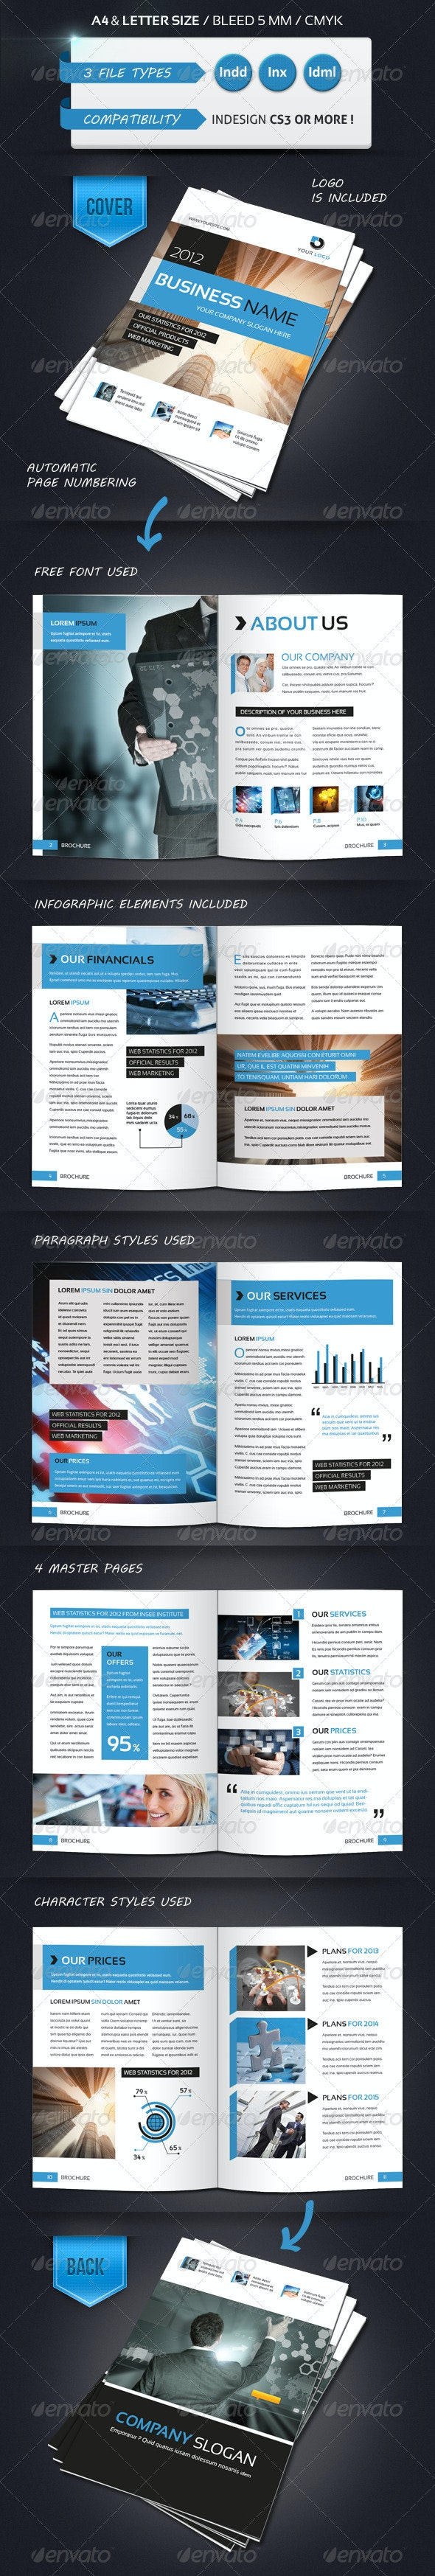 Modern Brochure Template A4 12 Pages - Corporate Brochures